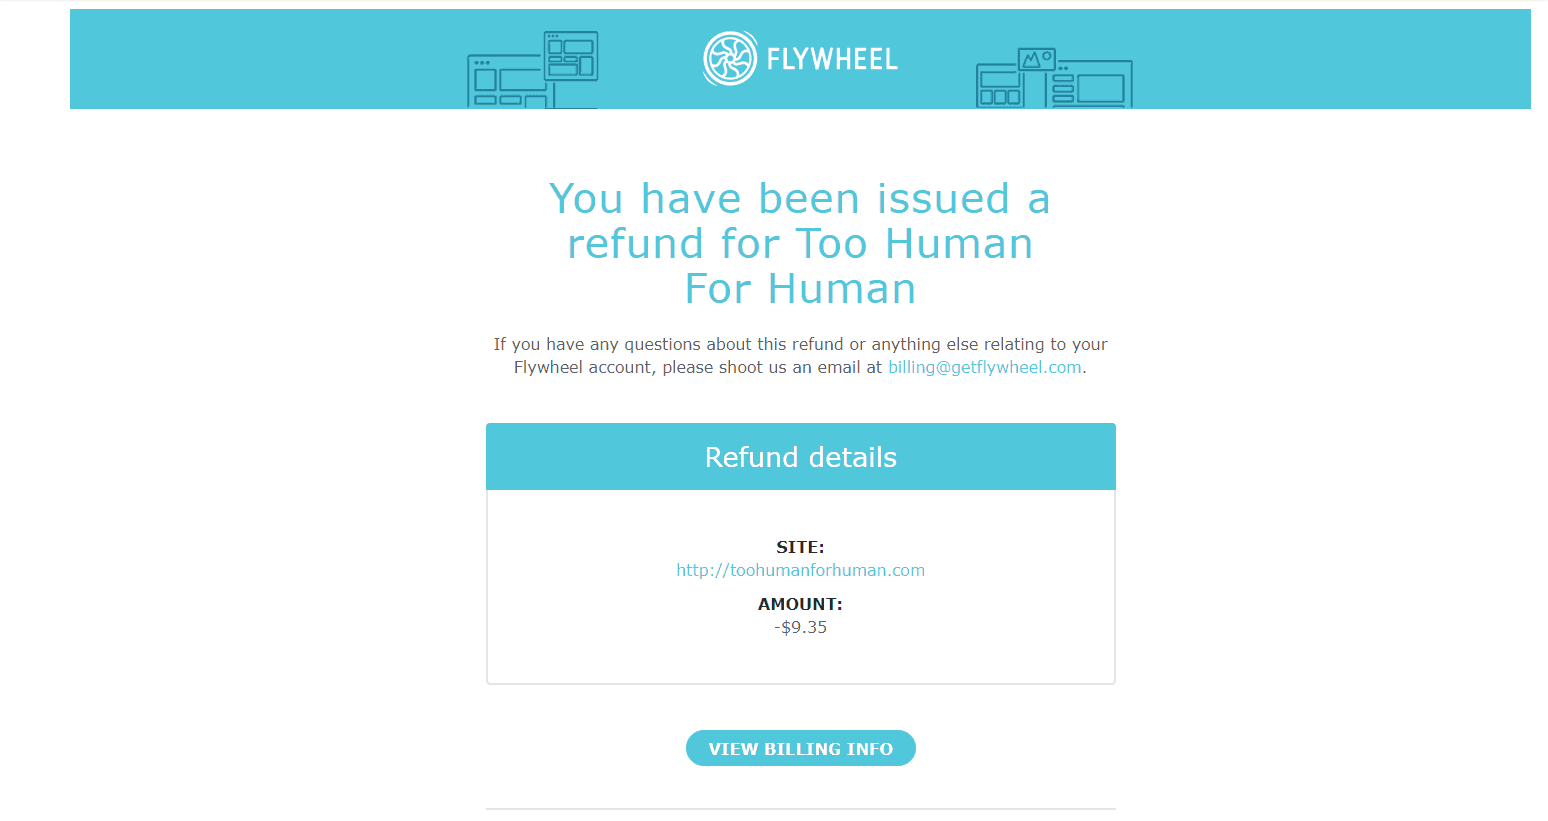 How-to-Cancel-Your-Account-with-Flywheel-and-Get-a-Refund-image8